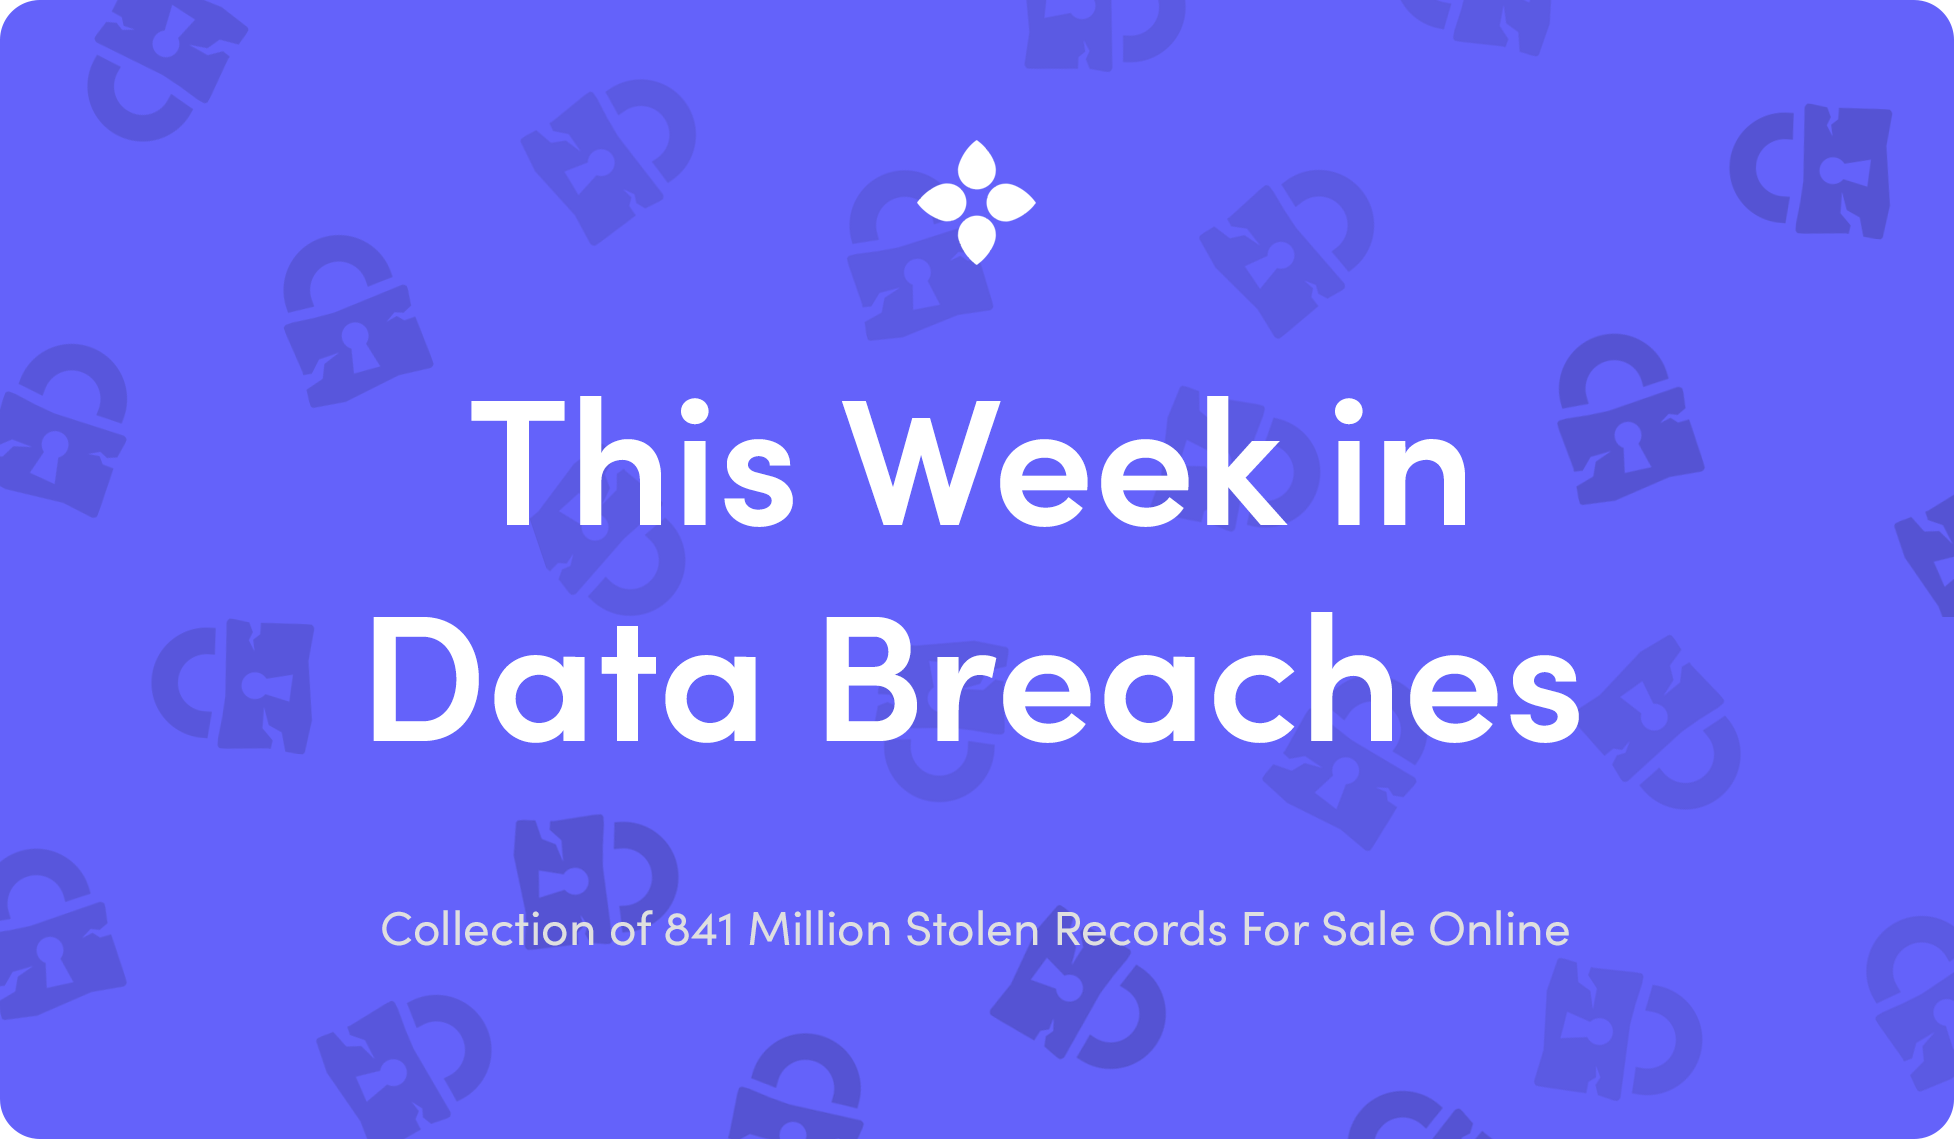 This Week in Data Breaches: Collection of 841M Stolen